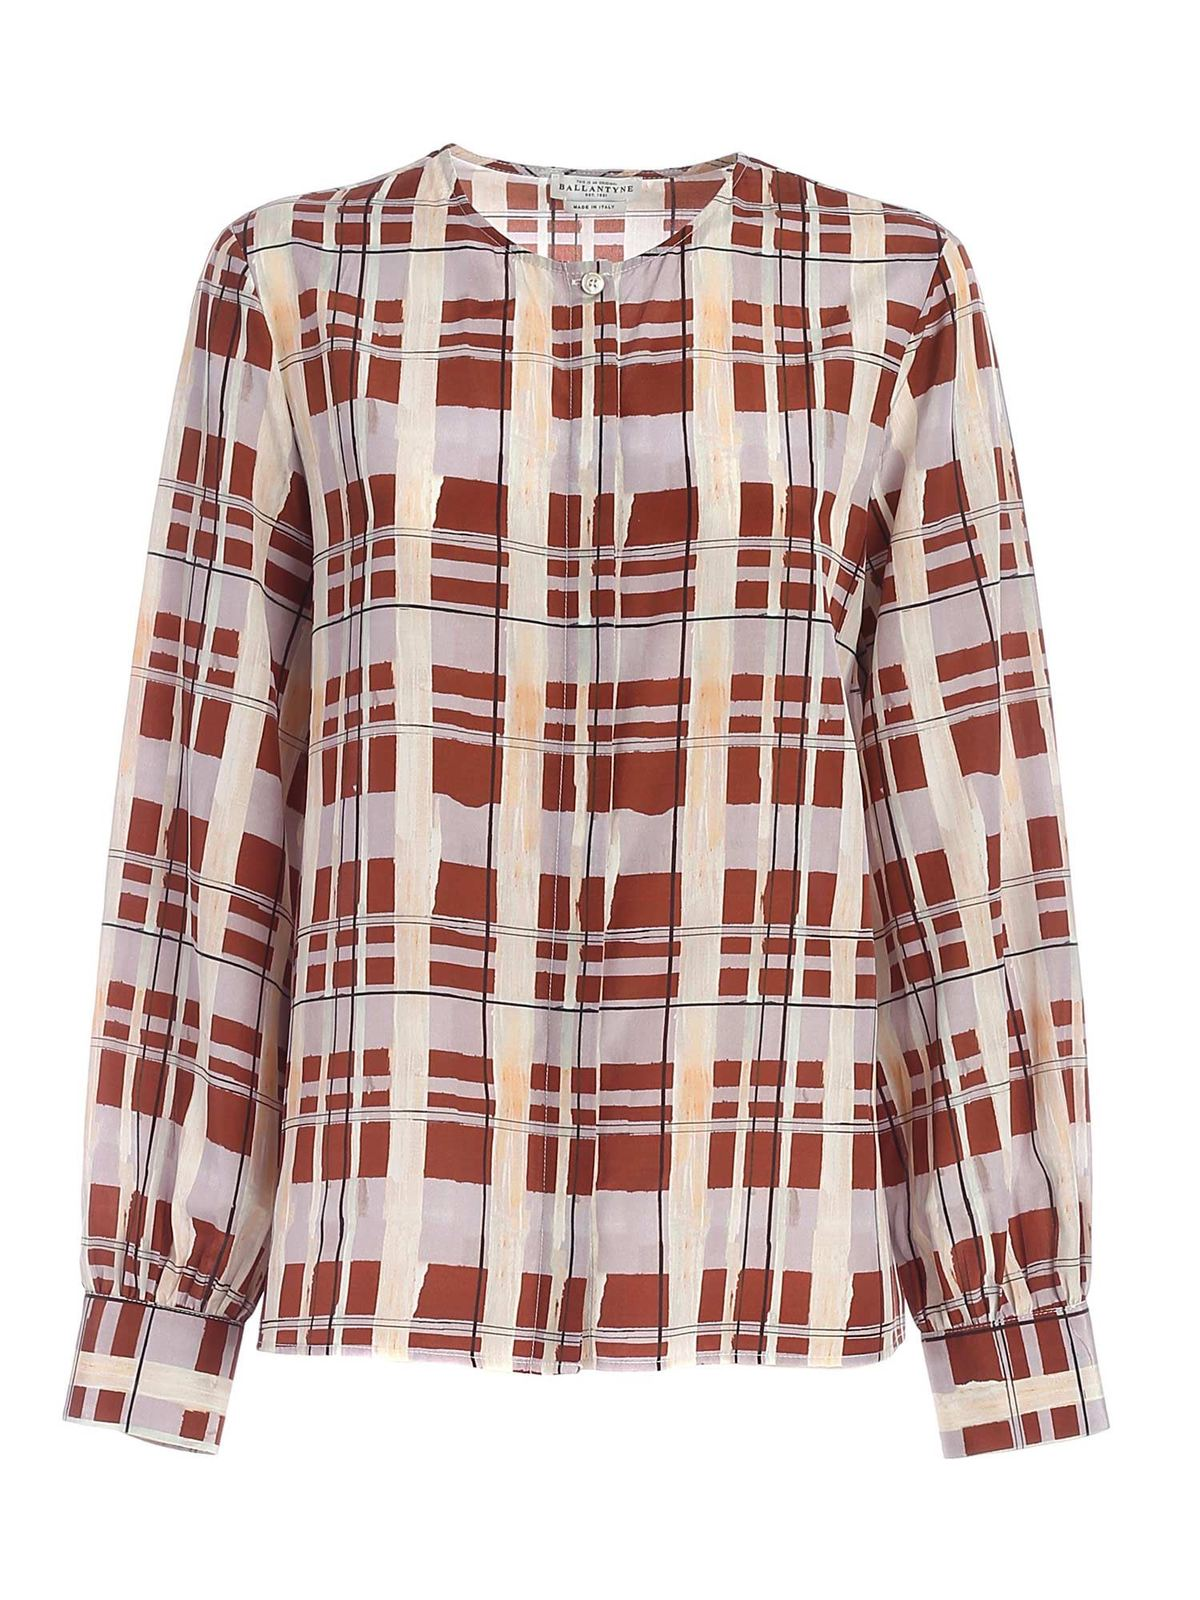 Ballantyne Silks CHECKED PRINT MULTICOLOR SHIRT